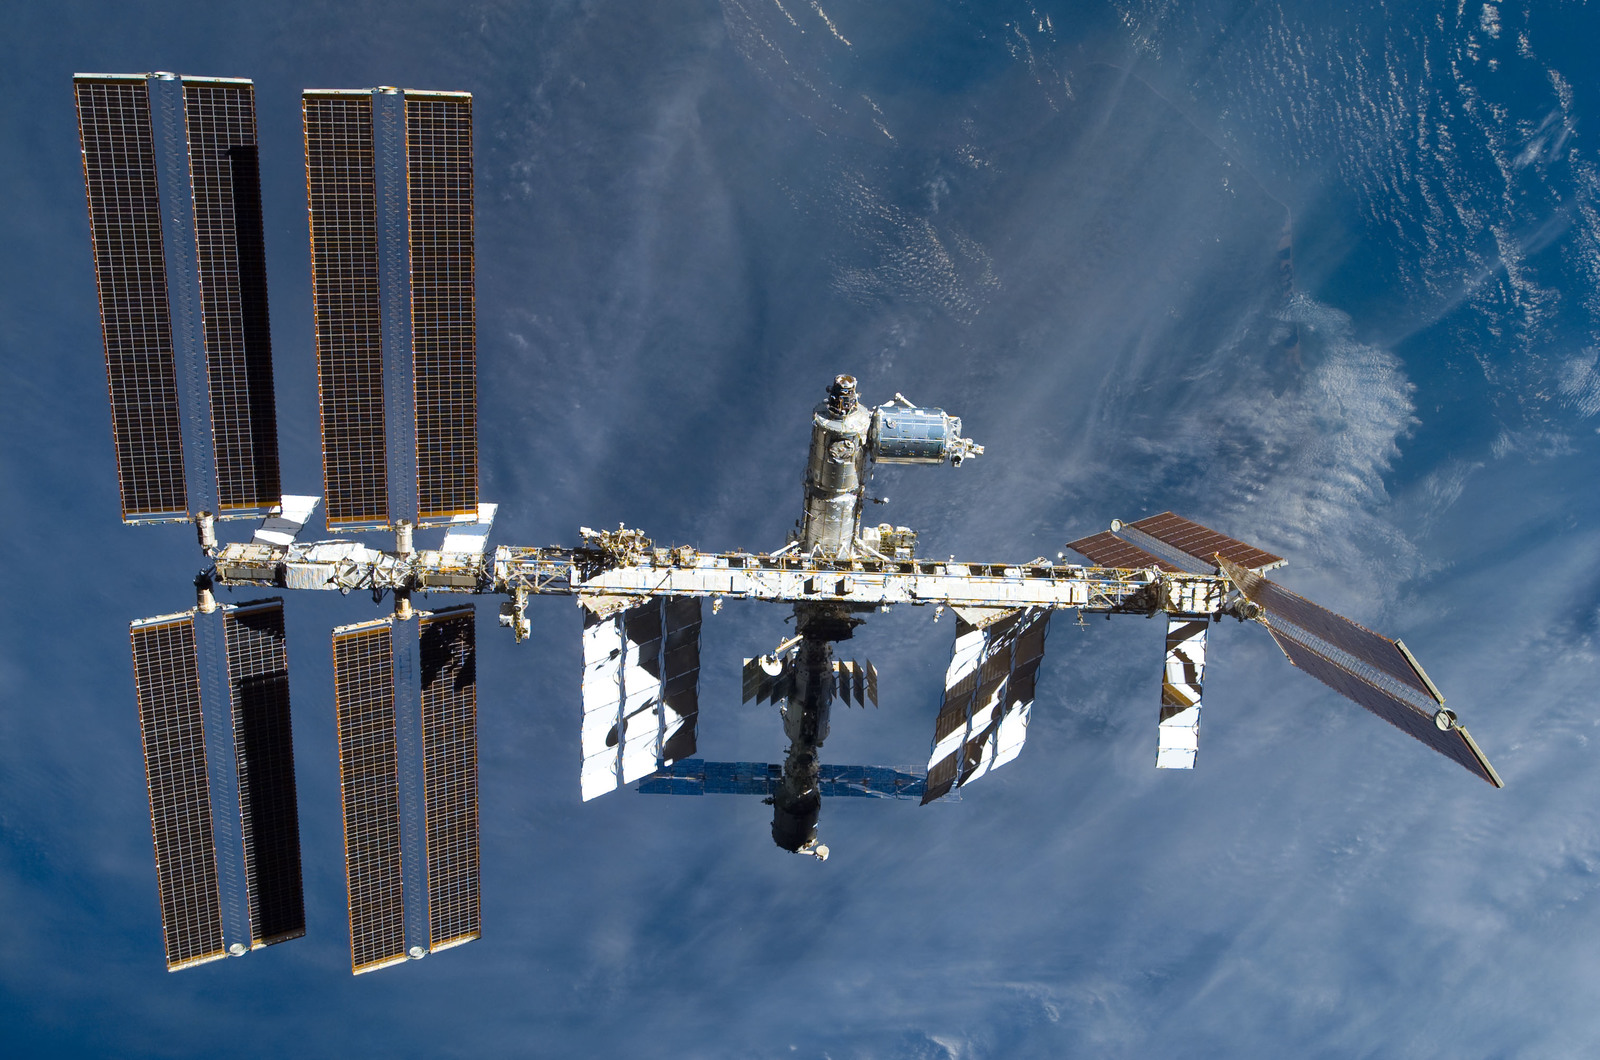 S122E009888 - STS-122 - View of ISS after STS-122 Undocking